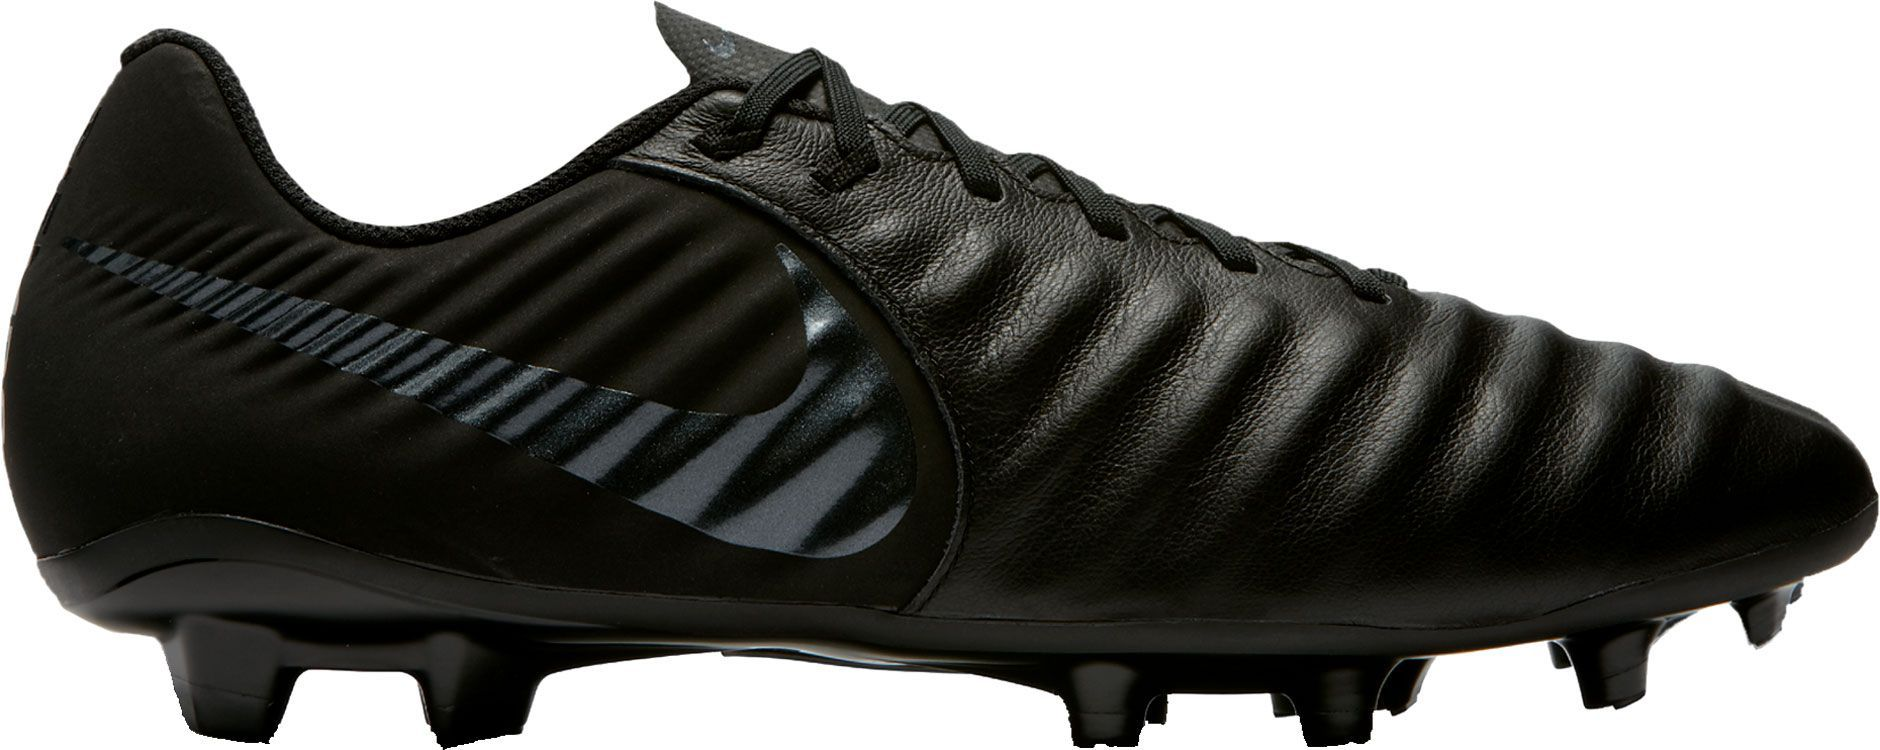 huge discount 9f552 9ec58 Nike Tiempo Legend 7 Academy FG Soccer Cleats | Products ...